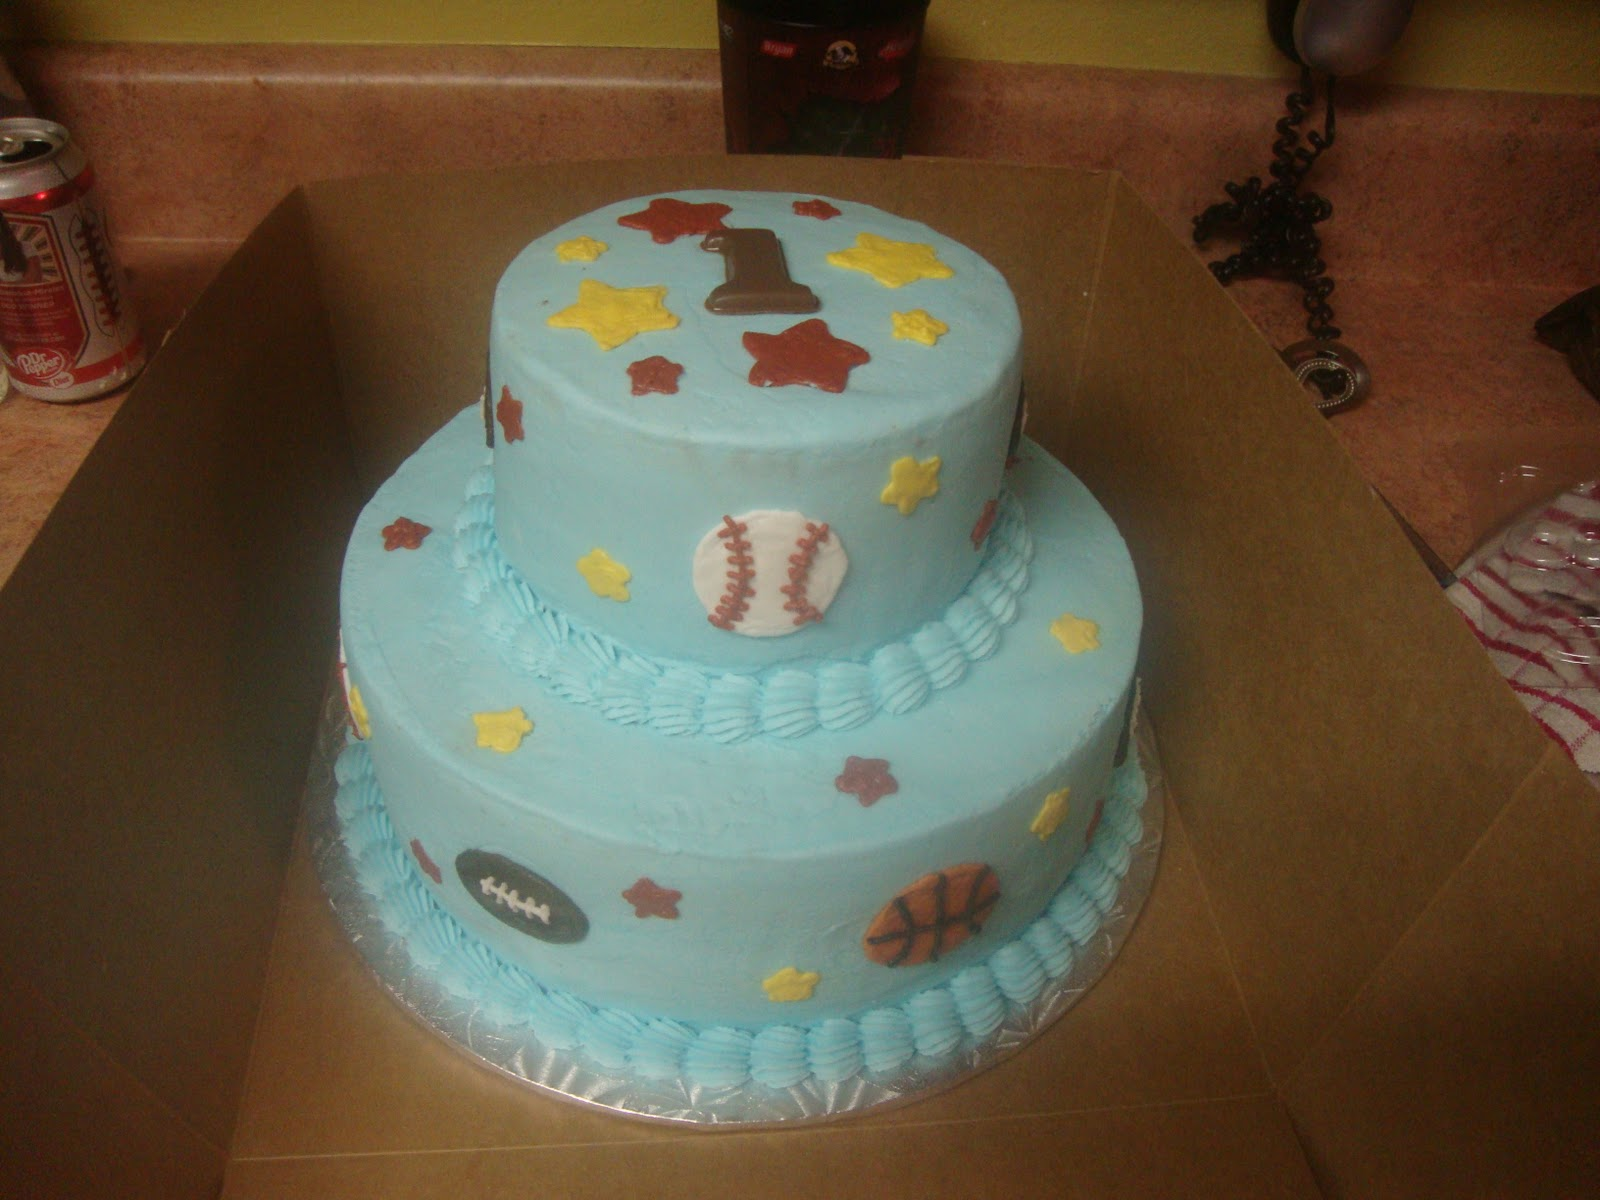 Birthday Cake Pictures For Baby Boy : Charity s Sunshine Sweets: BABY BOY S 1ST BIRTHDAY CAKE